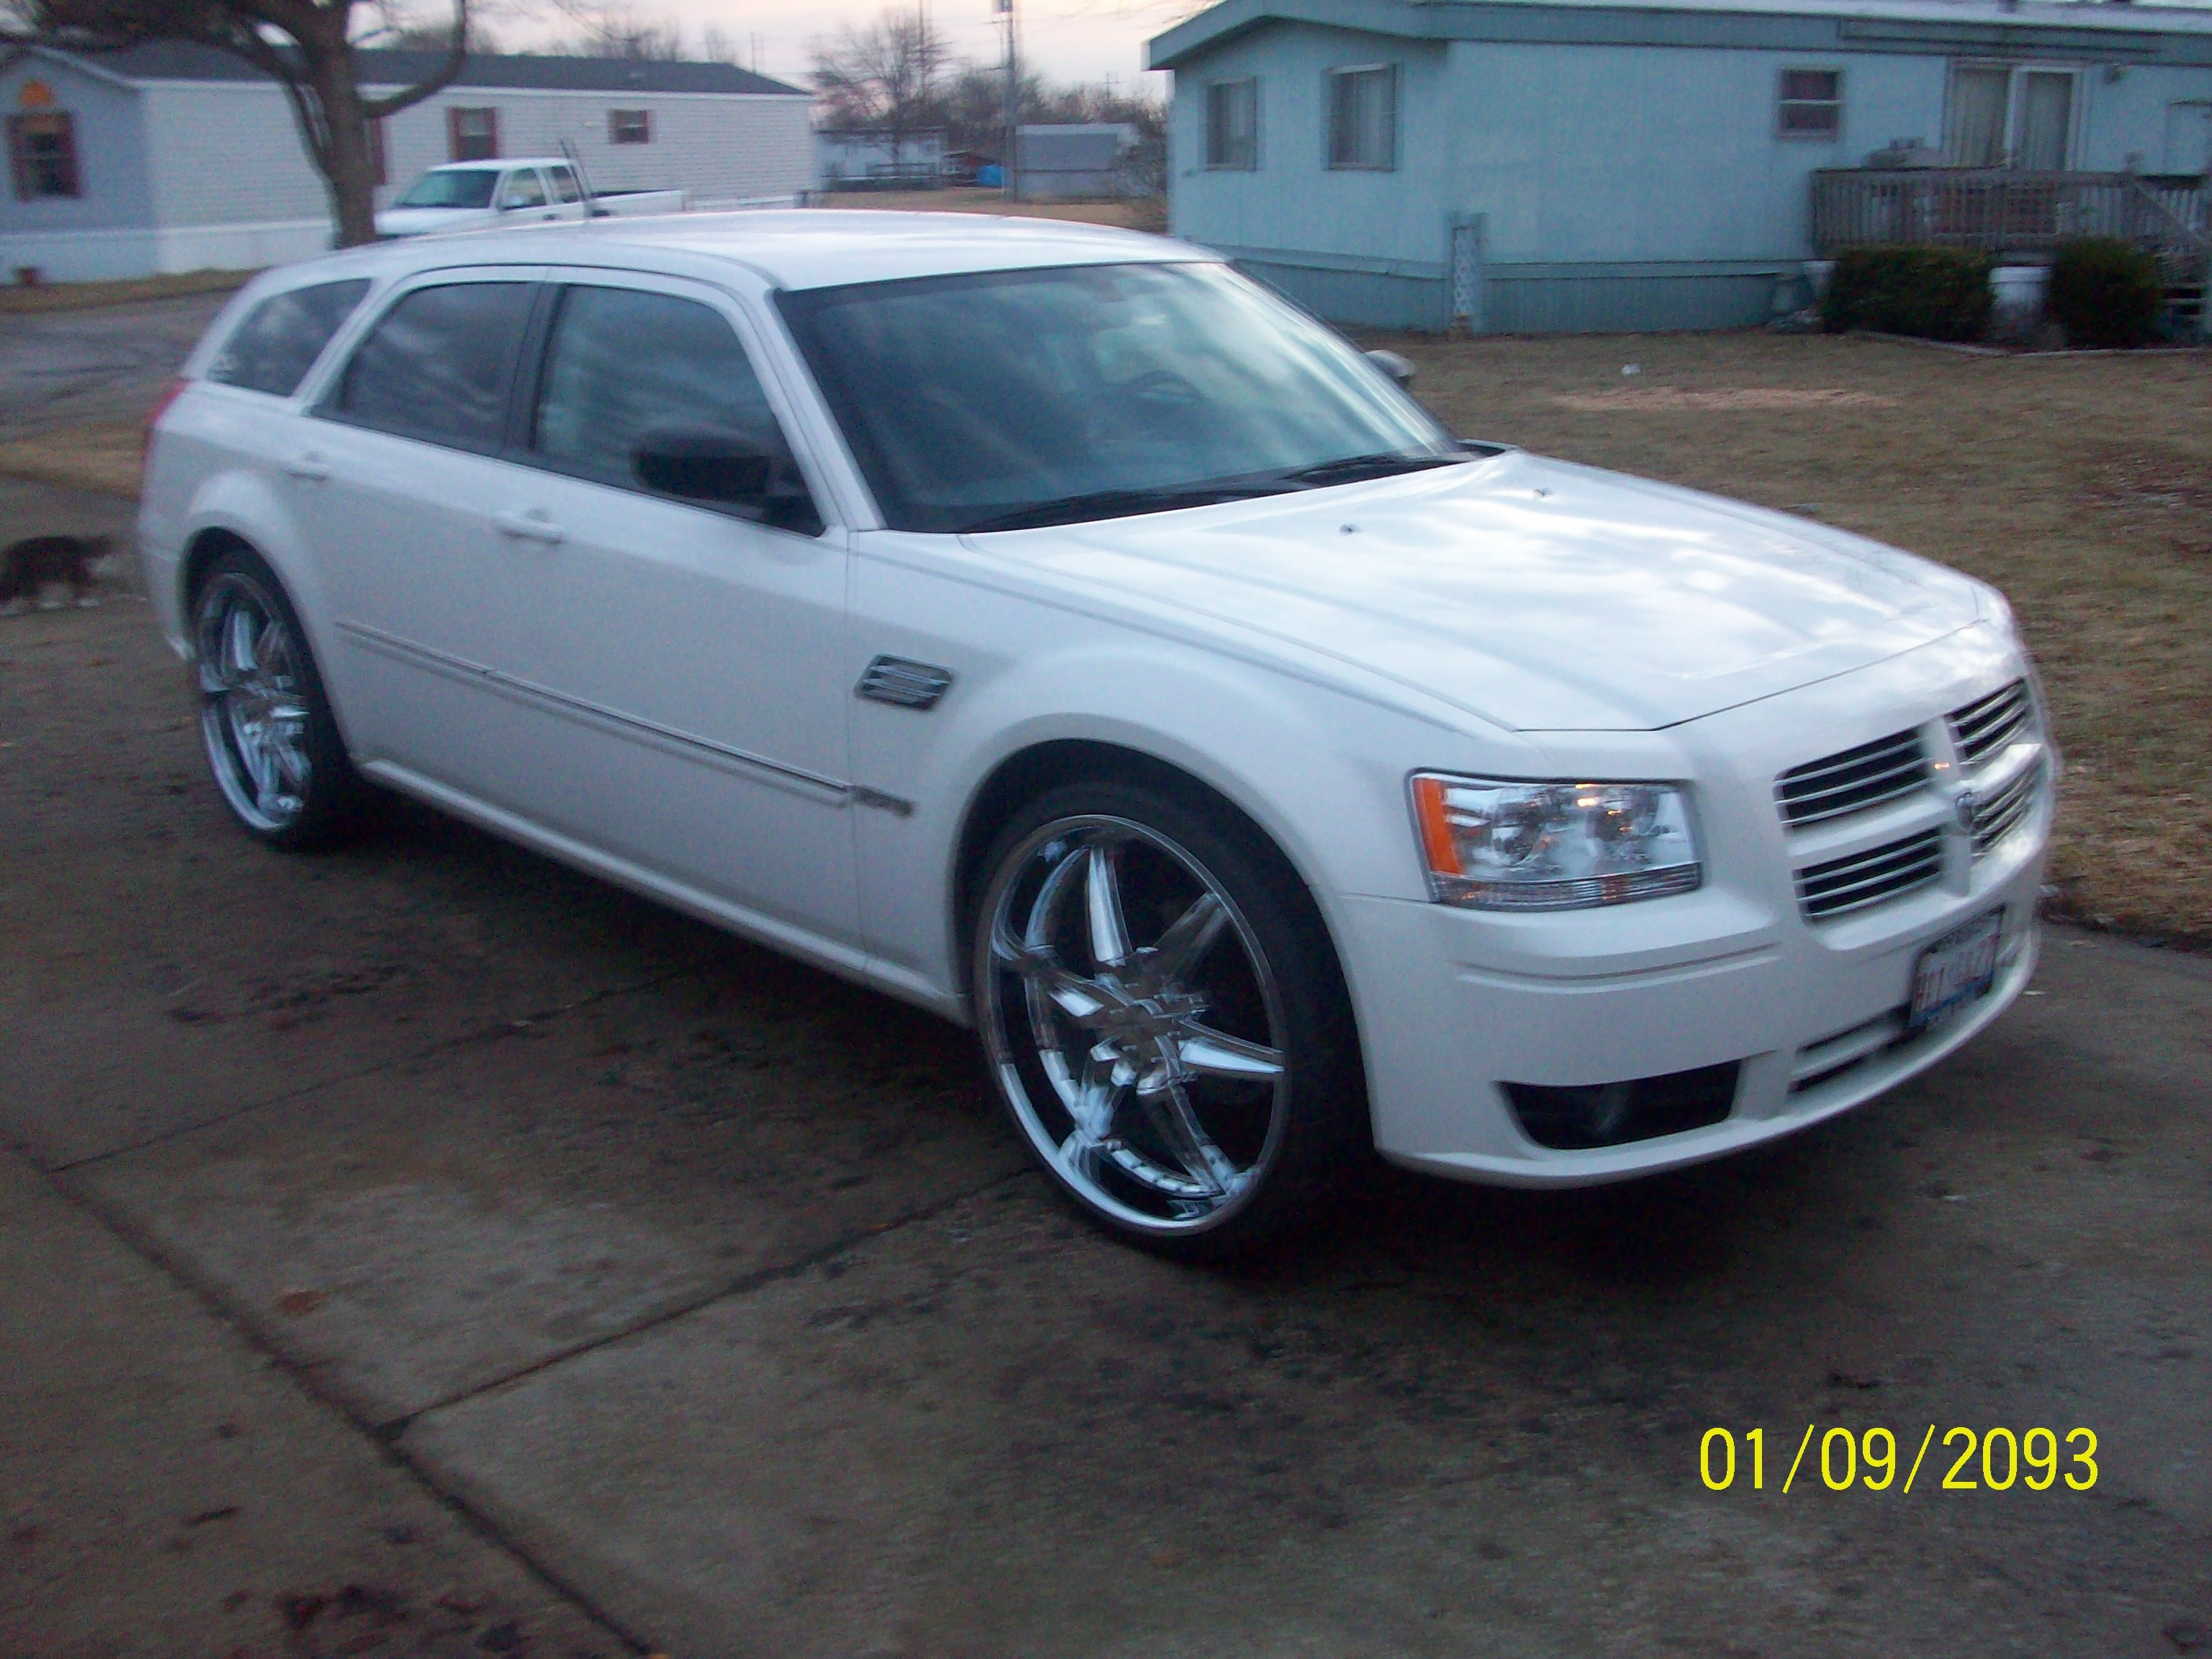 showing selection an dodge specs for image magnum images your reviews and csl dp t sxt have amazon com vehicles don we